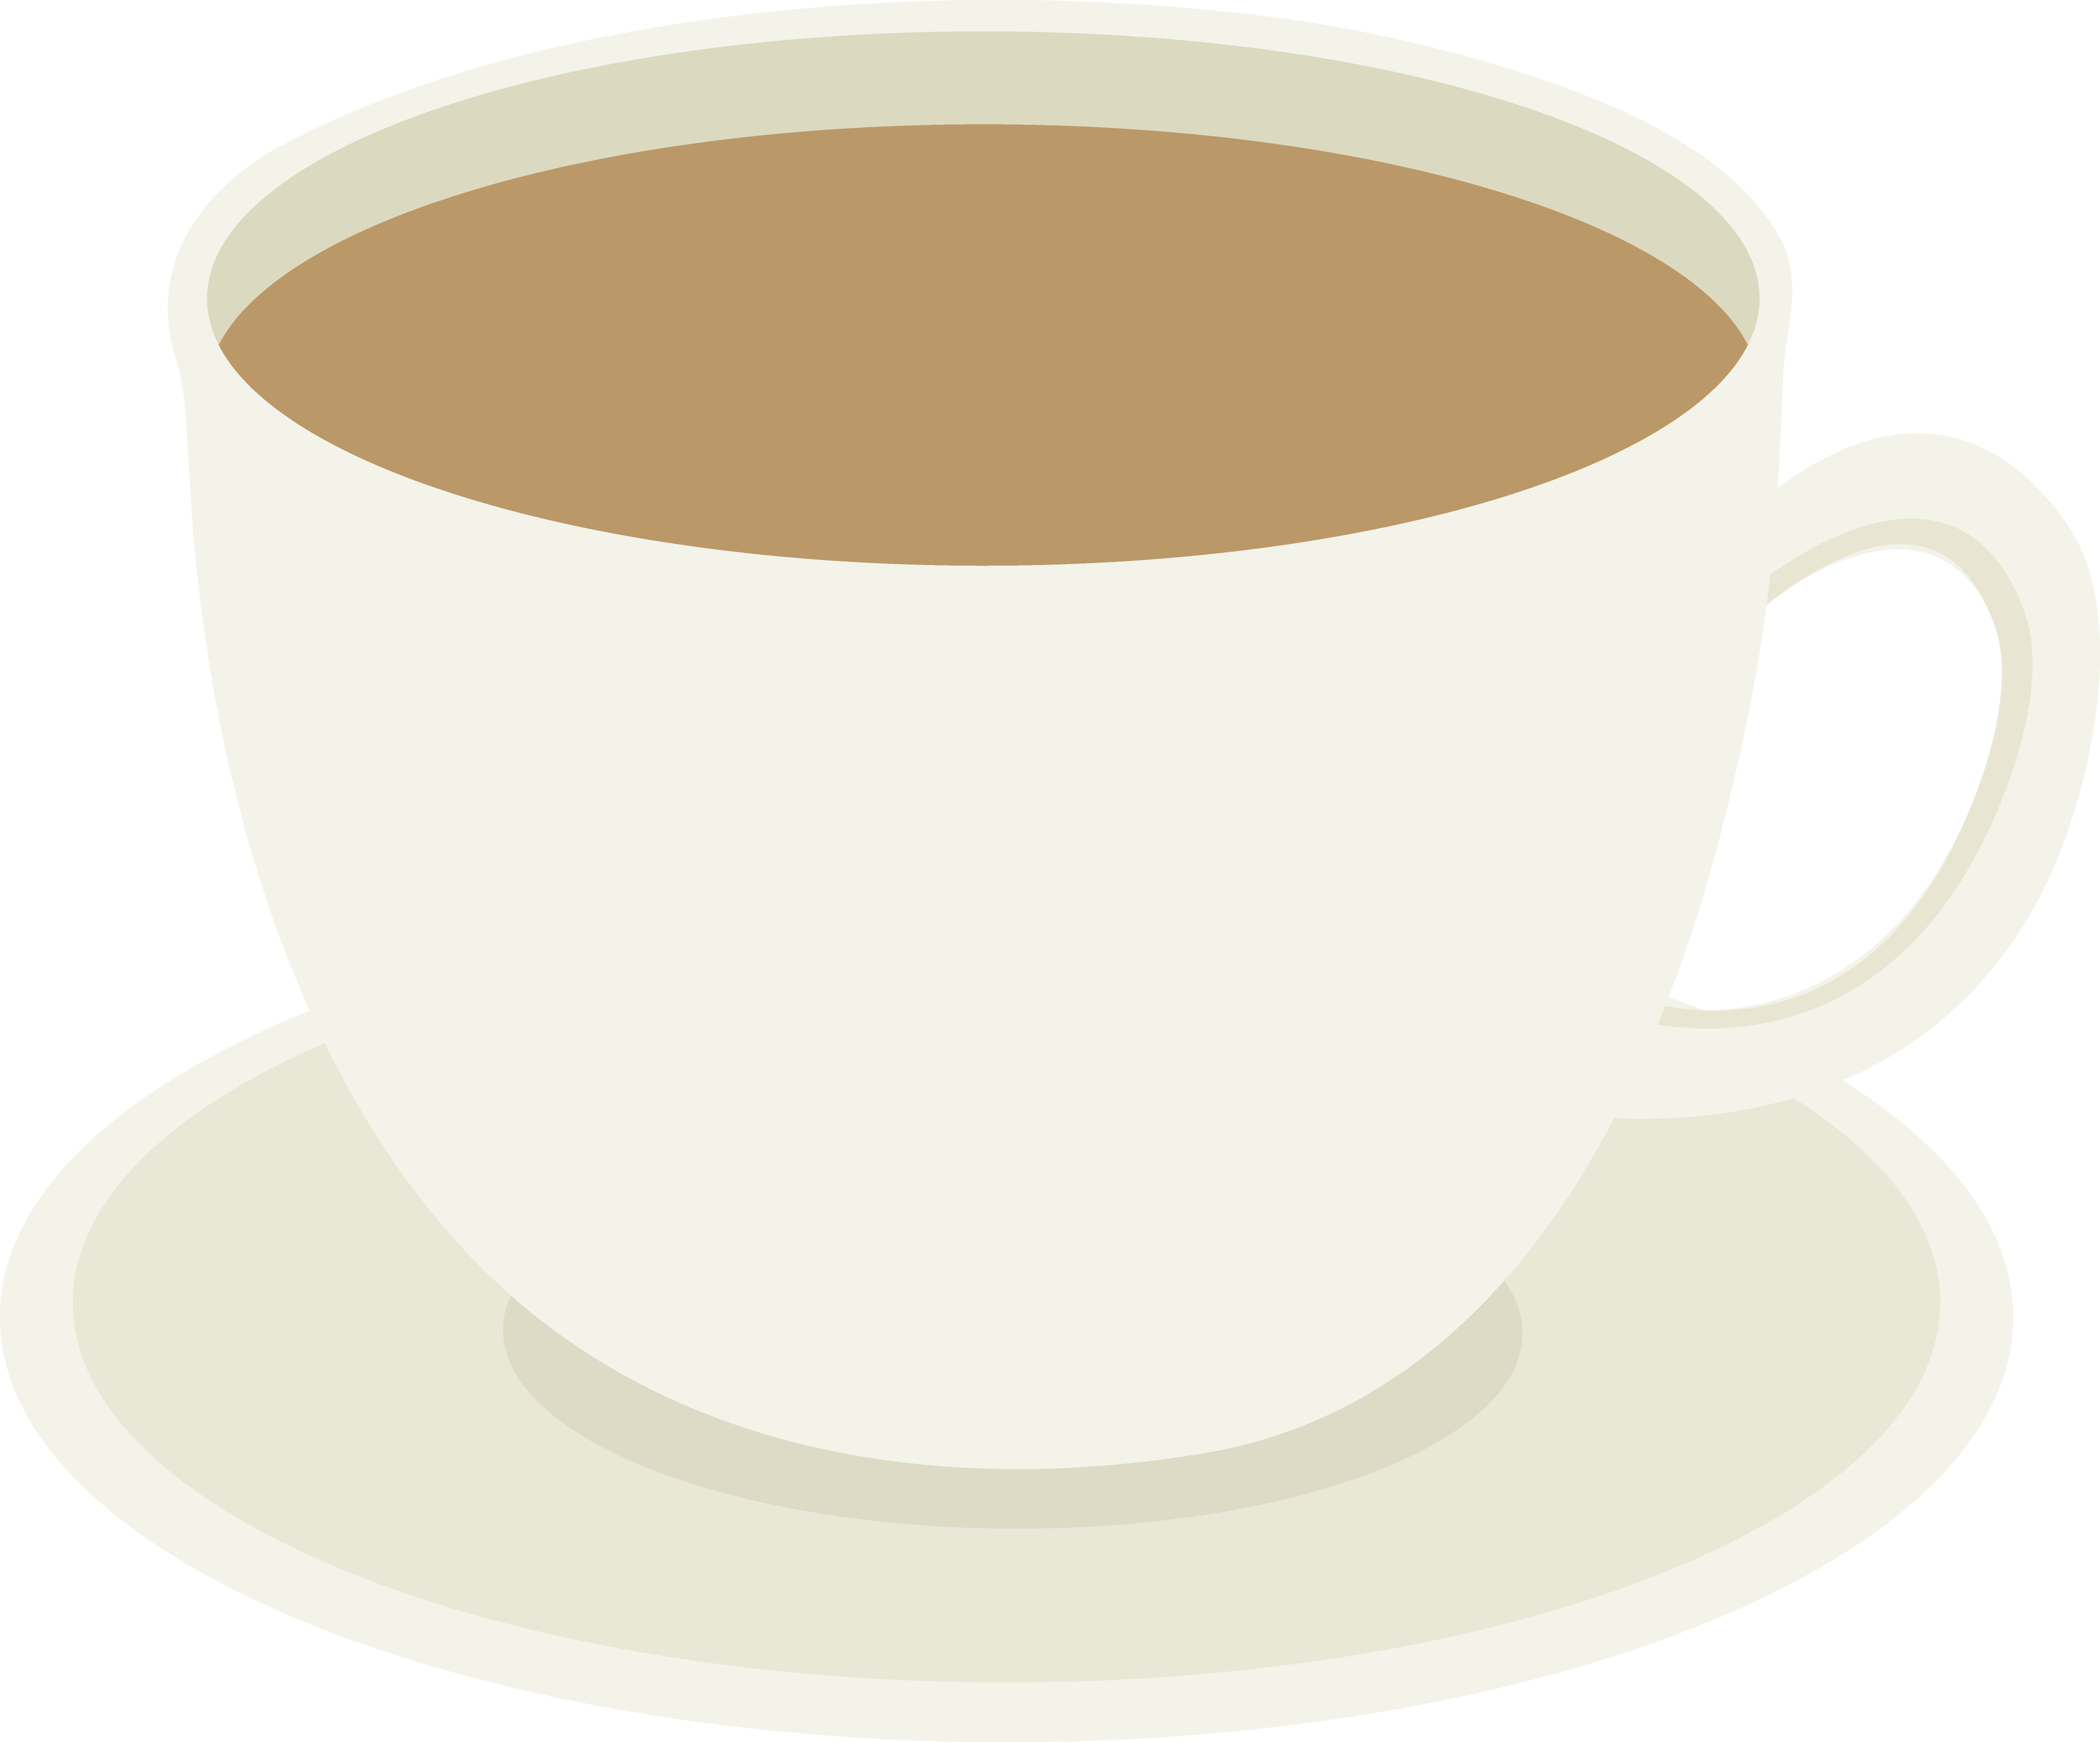 Coffee cup clipart cartoon. Free pictures of hot